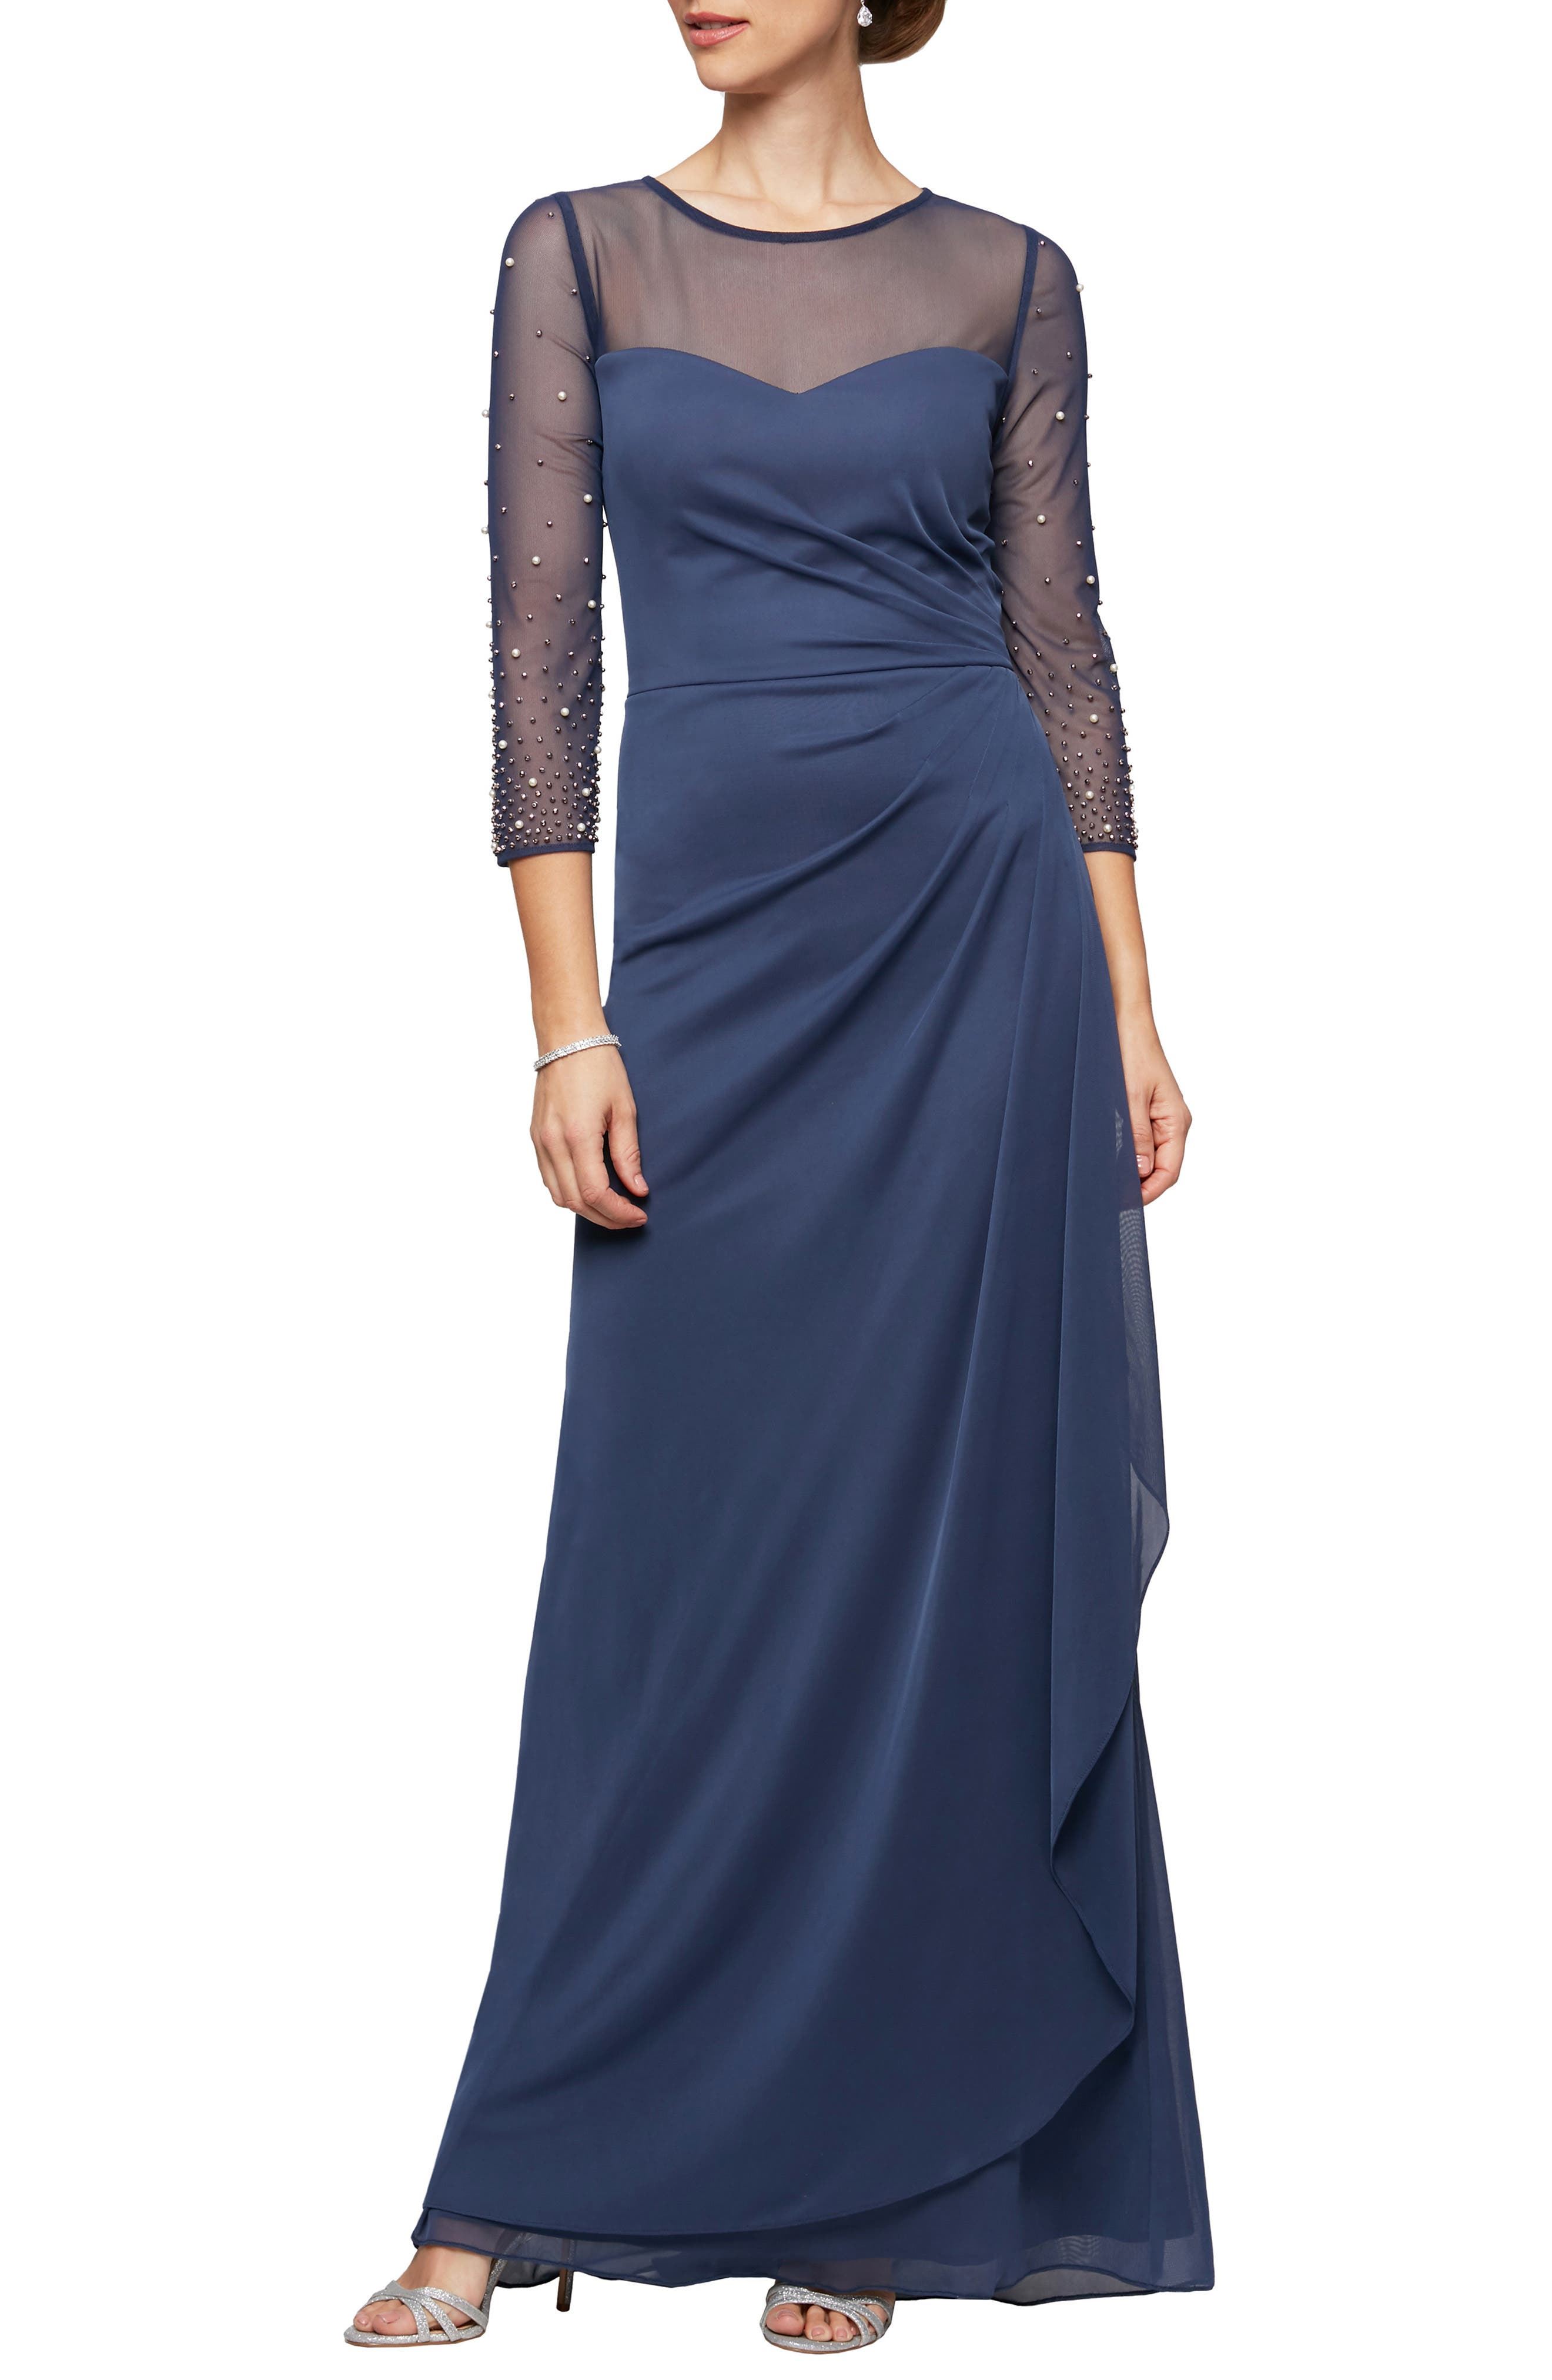 An elegant gown telegraphs serene beauty with its draped structure, beaded sleeves and sheer yoke and sleeves. Style Name: Alex Evenings Illusion Lace Beaded Detail A-Line Gown. Style Number: 6067780. Available in stores.